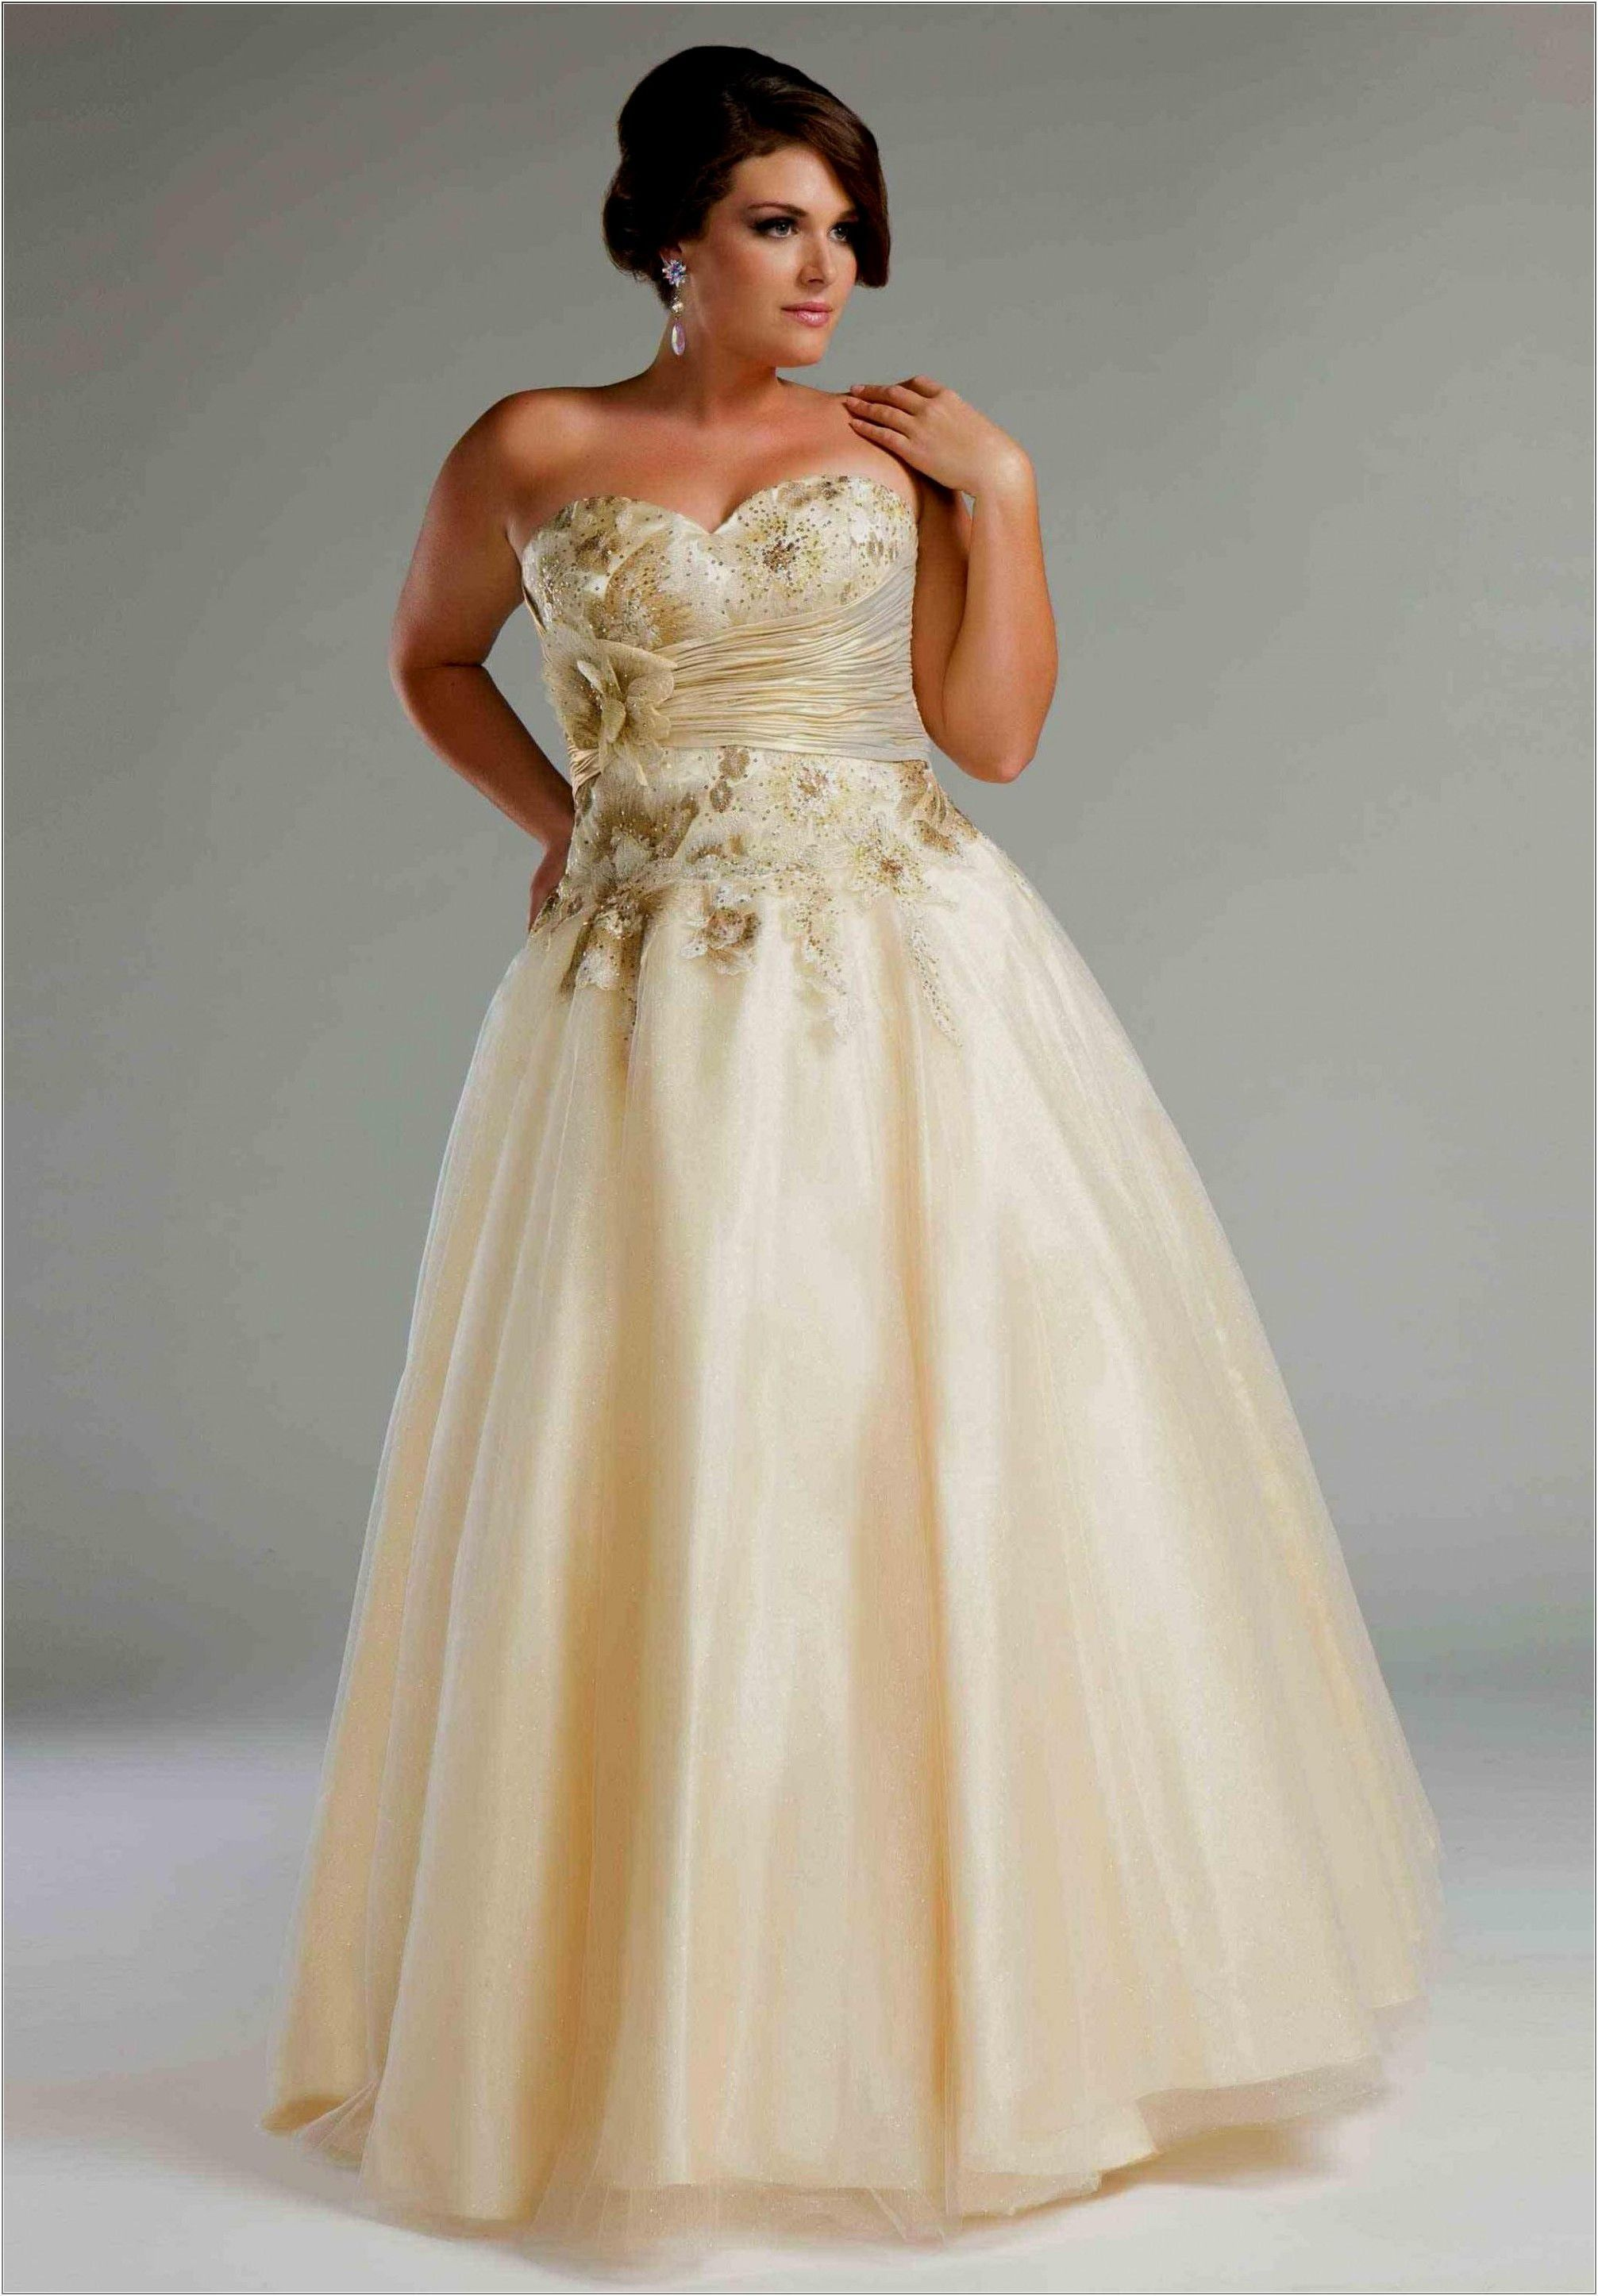 9e53a02b0a9 Plus Size Wedding Dresses Pix For Plus Size Gold Wedding Dresses - Dress  Inspiration for Women